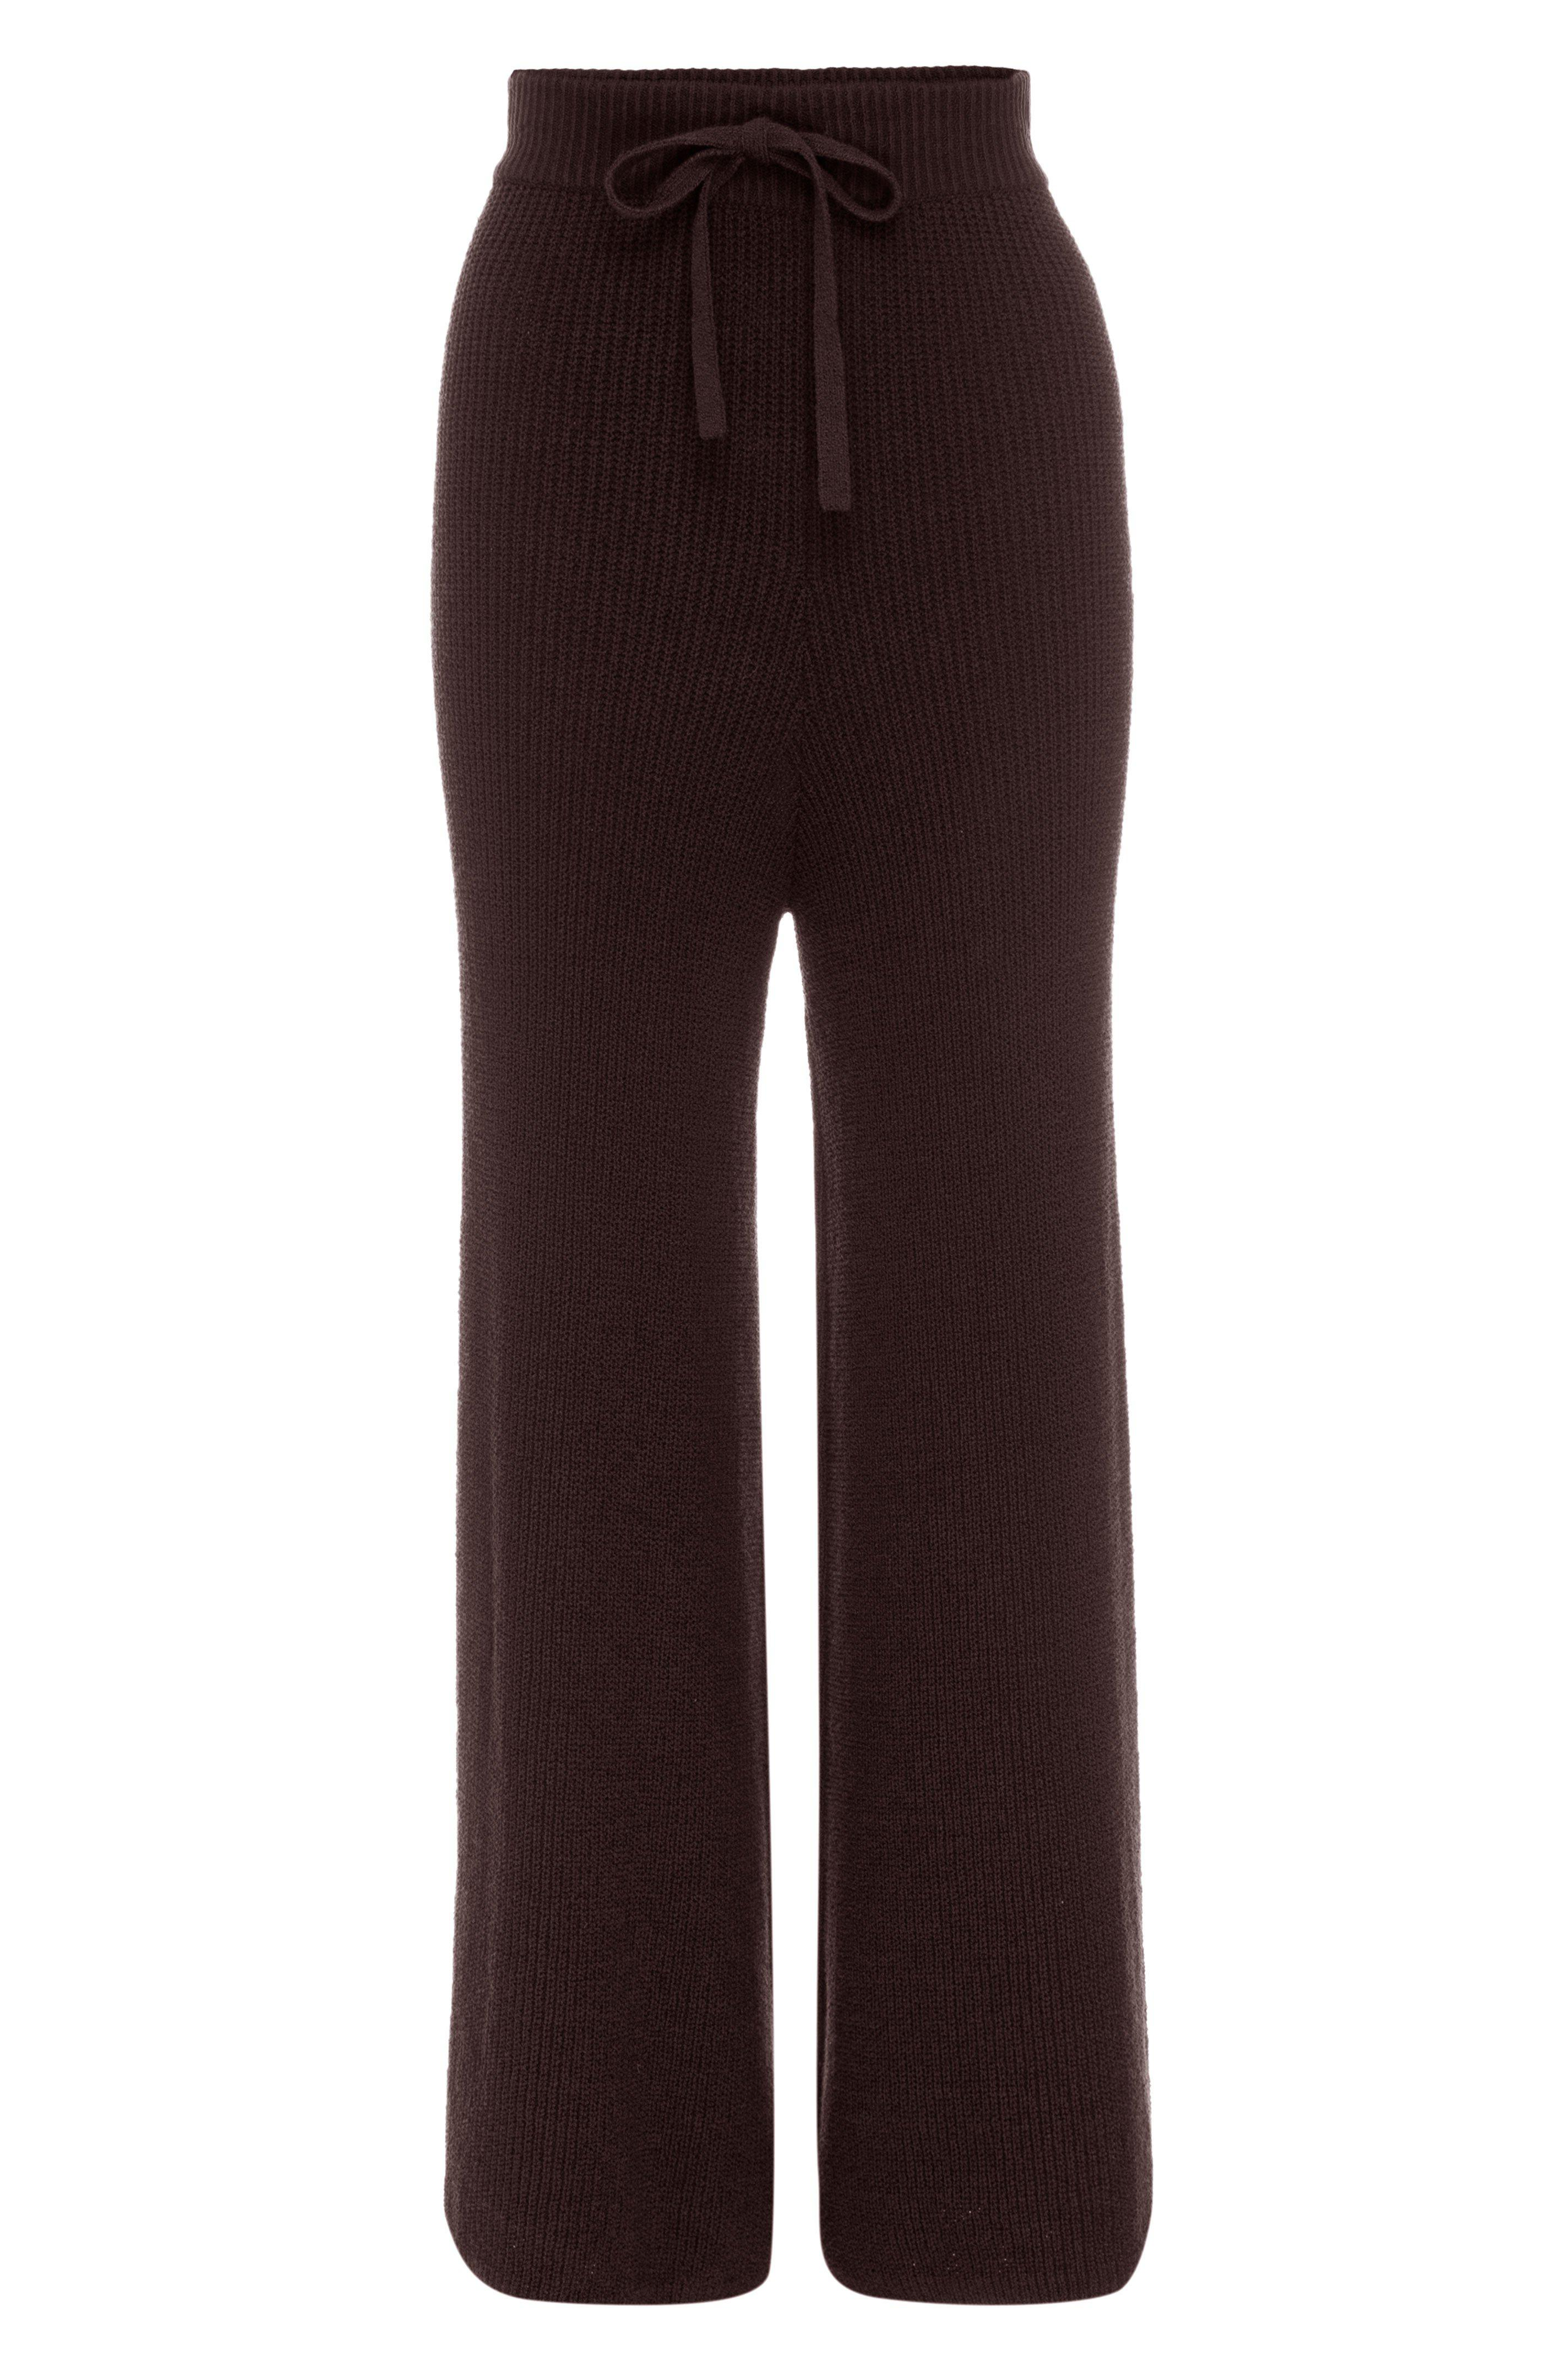 Martell Knit Pant 4